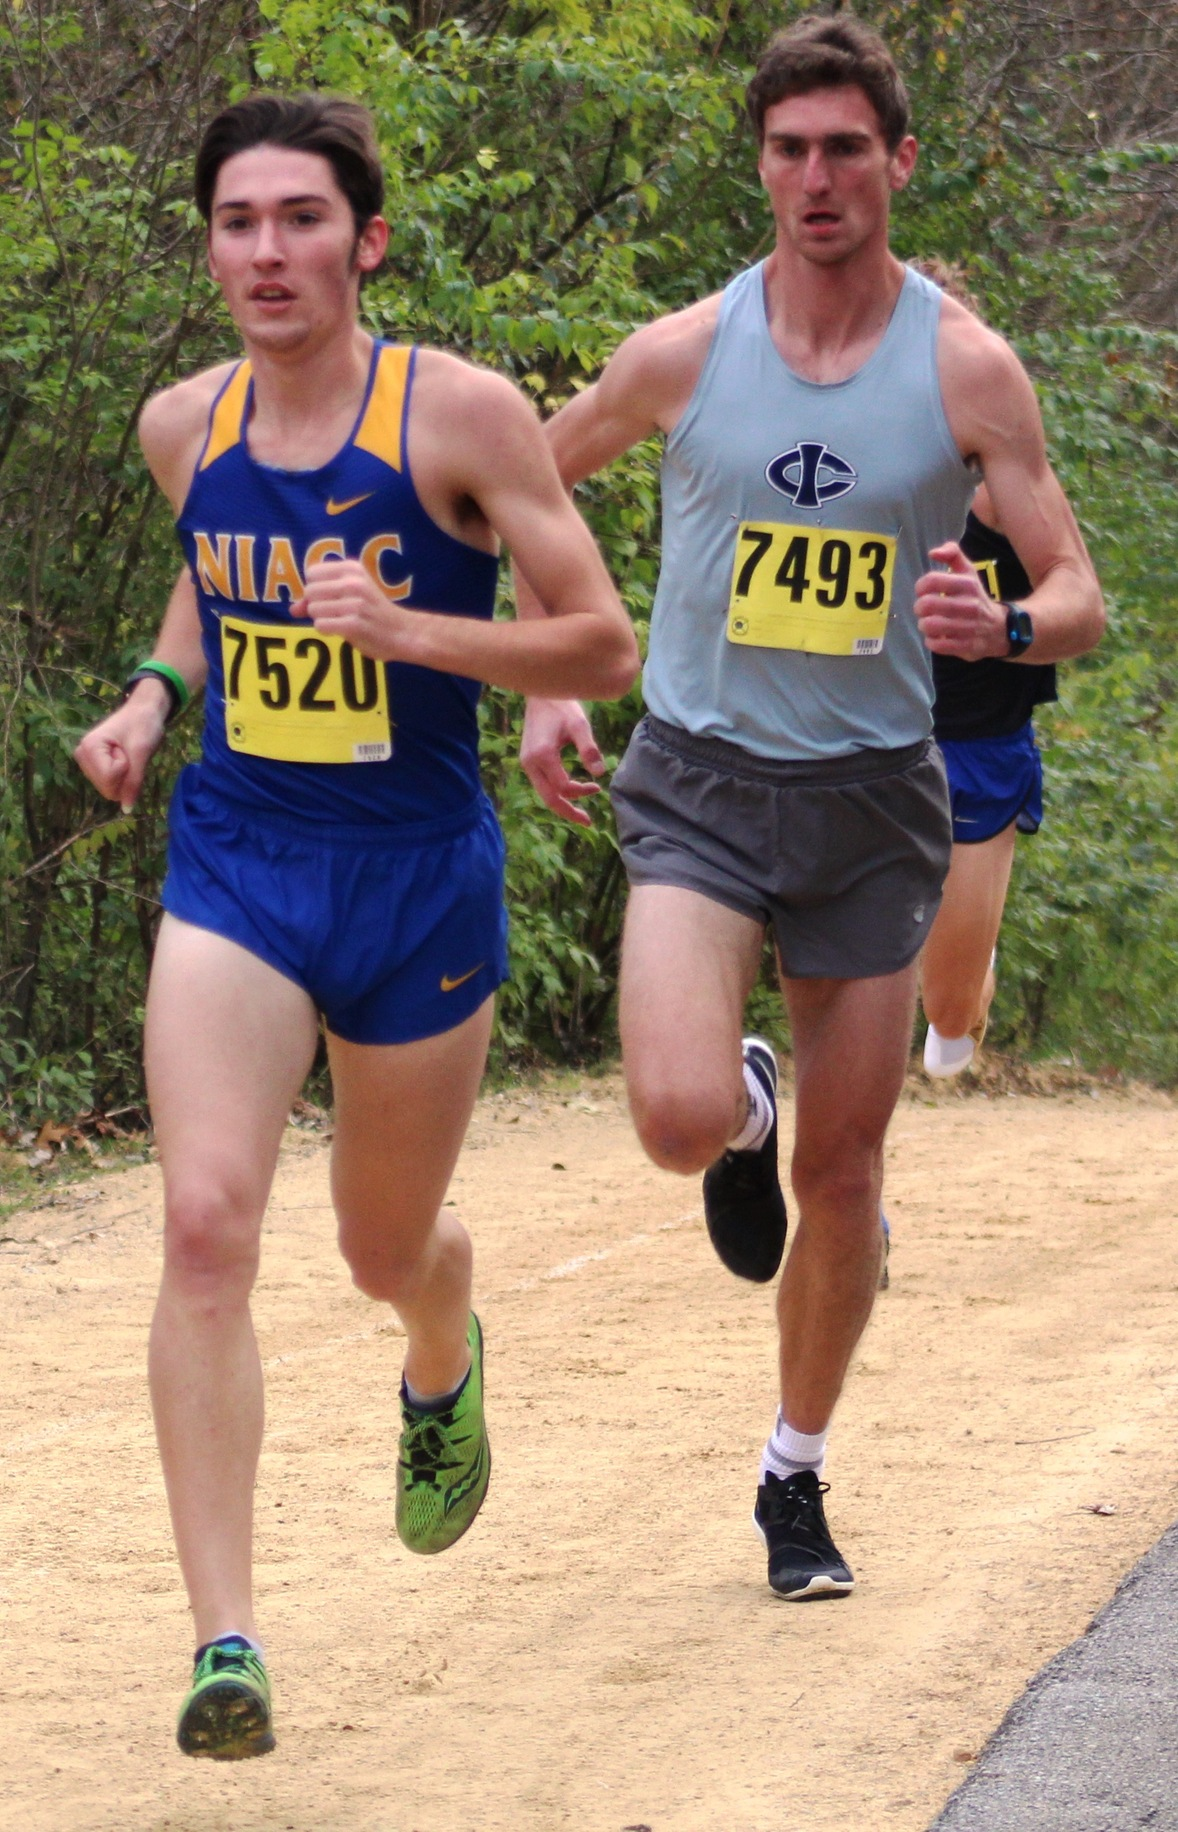 NIACC's Gavin Connell runs at the regional meet in Bettendorf on Oct. 26.